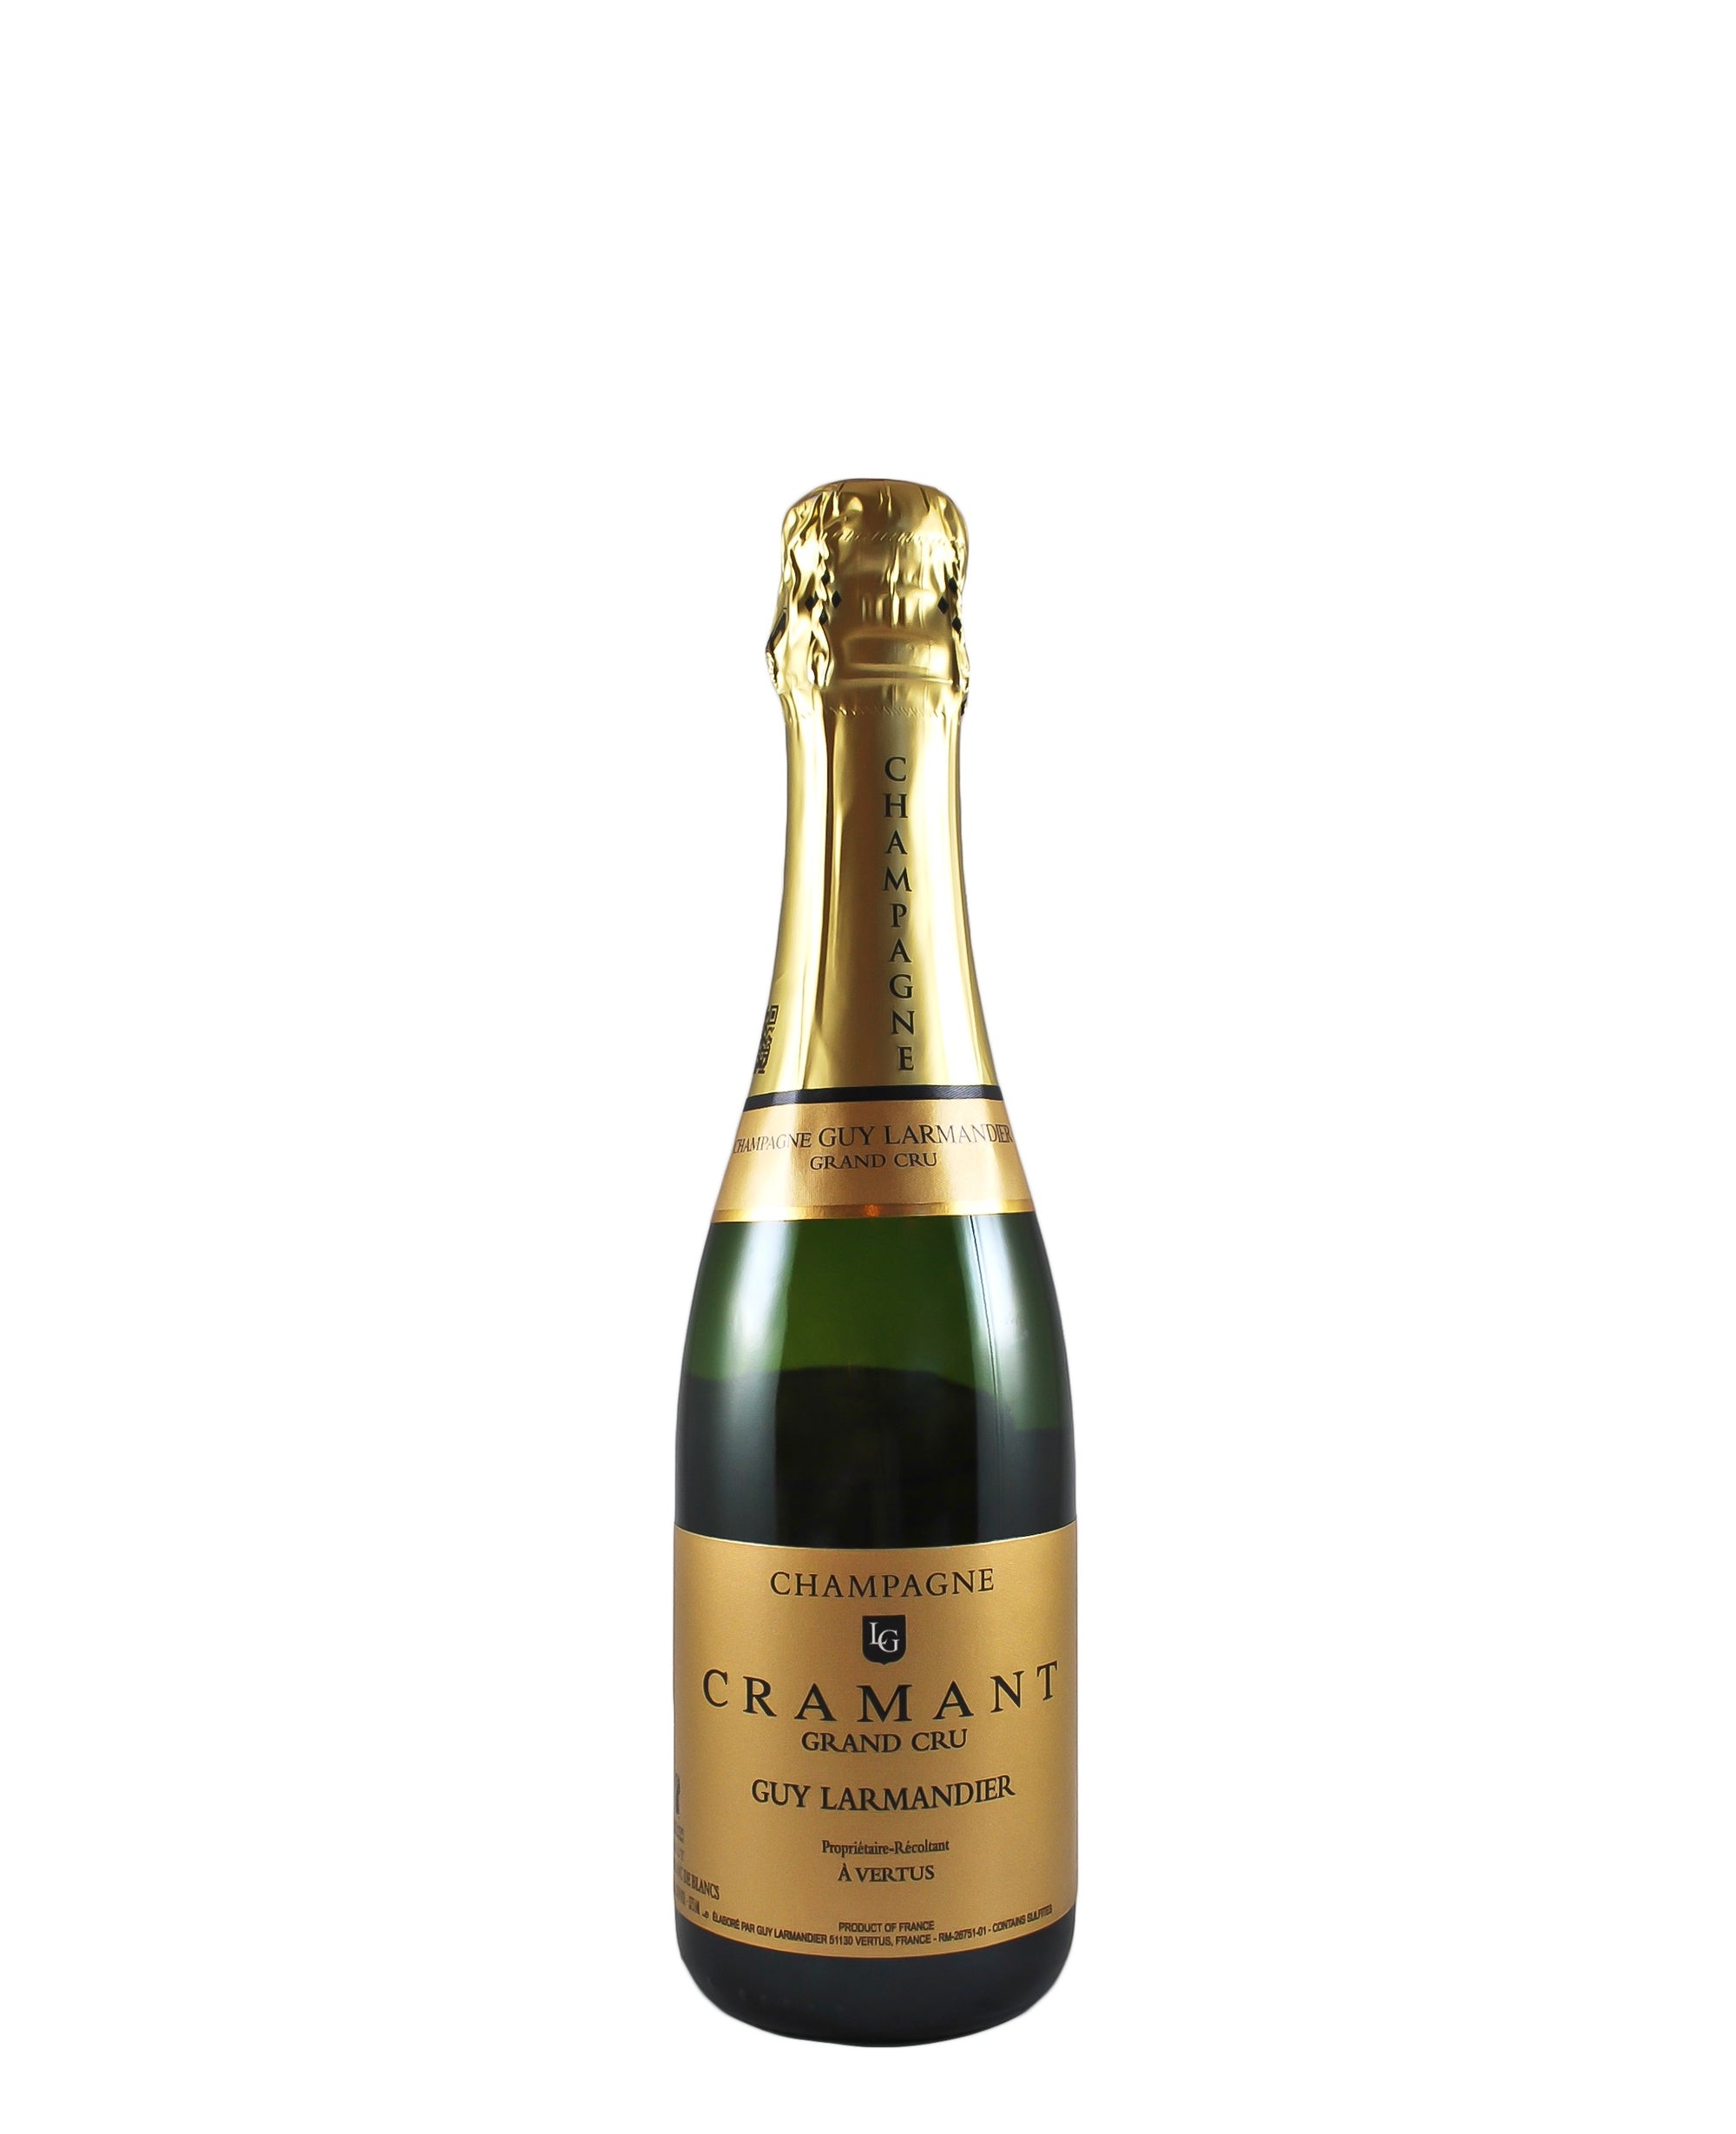 NV Guy Larmandier Cramant Grand Cru Brut Blanc de Blancs 375ml (Champagne, FR)